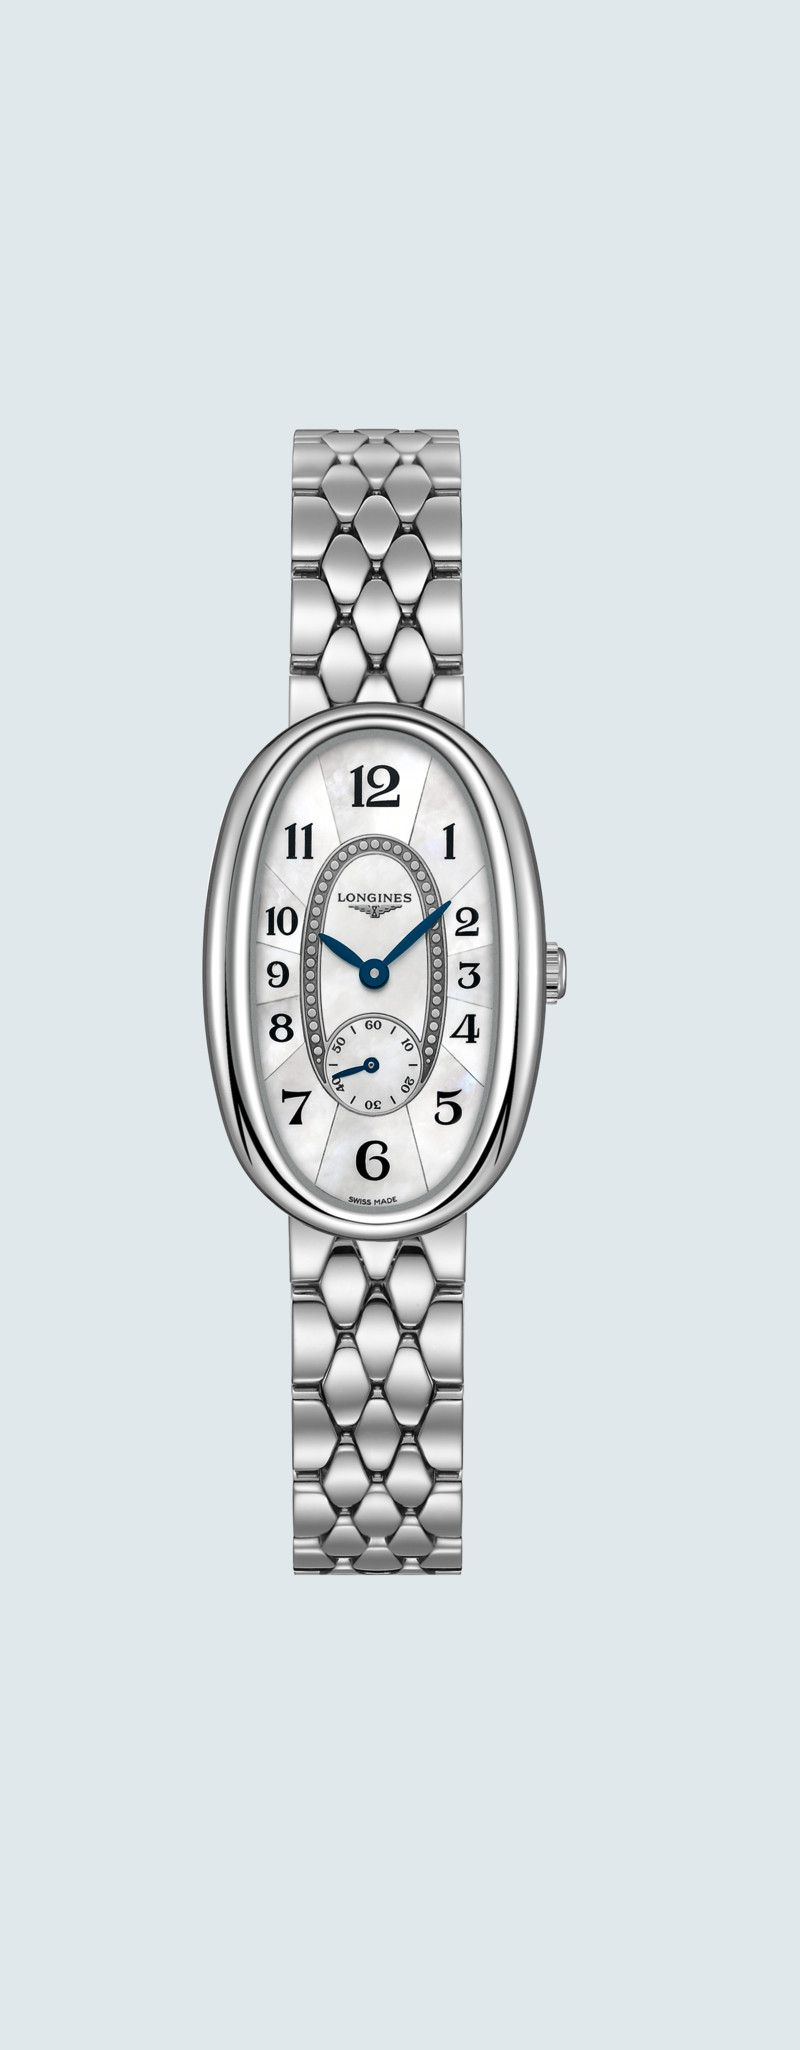 21.90 X 34.00 mm Stainless steel case with White mother-of-pearl dial and Stainless steel strap - c